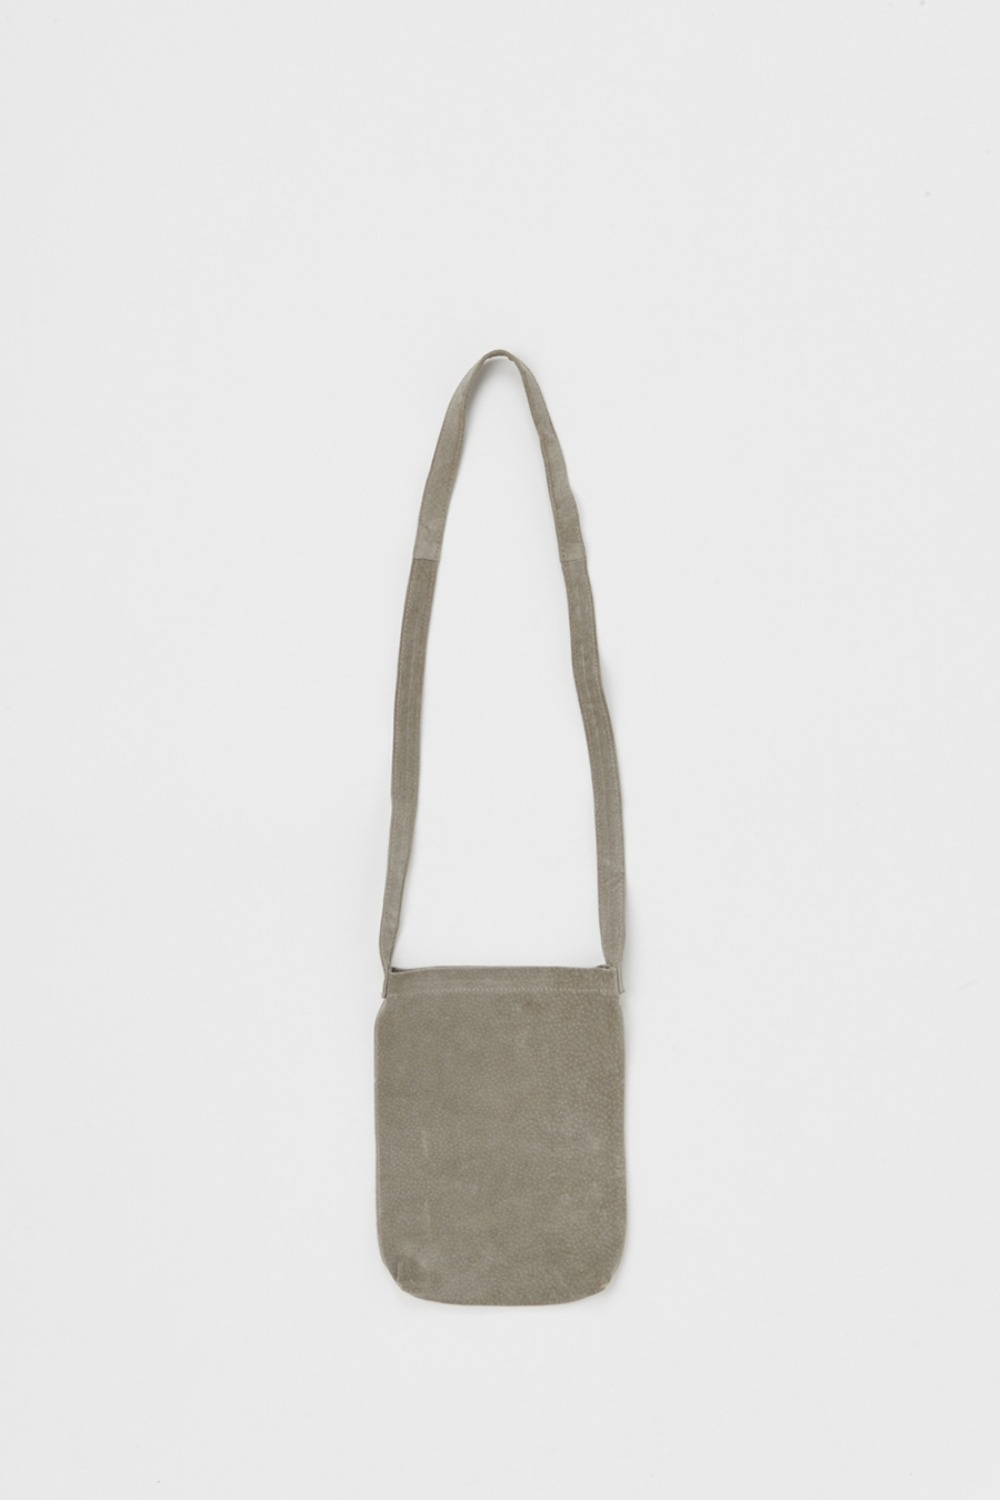 DE-RB-PSS SHOULDER BAG PIG LEATHER SMALL KHAKI